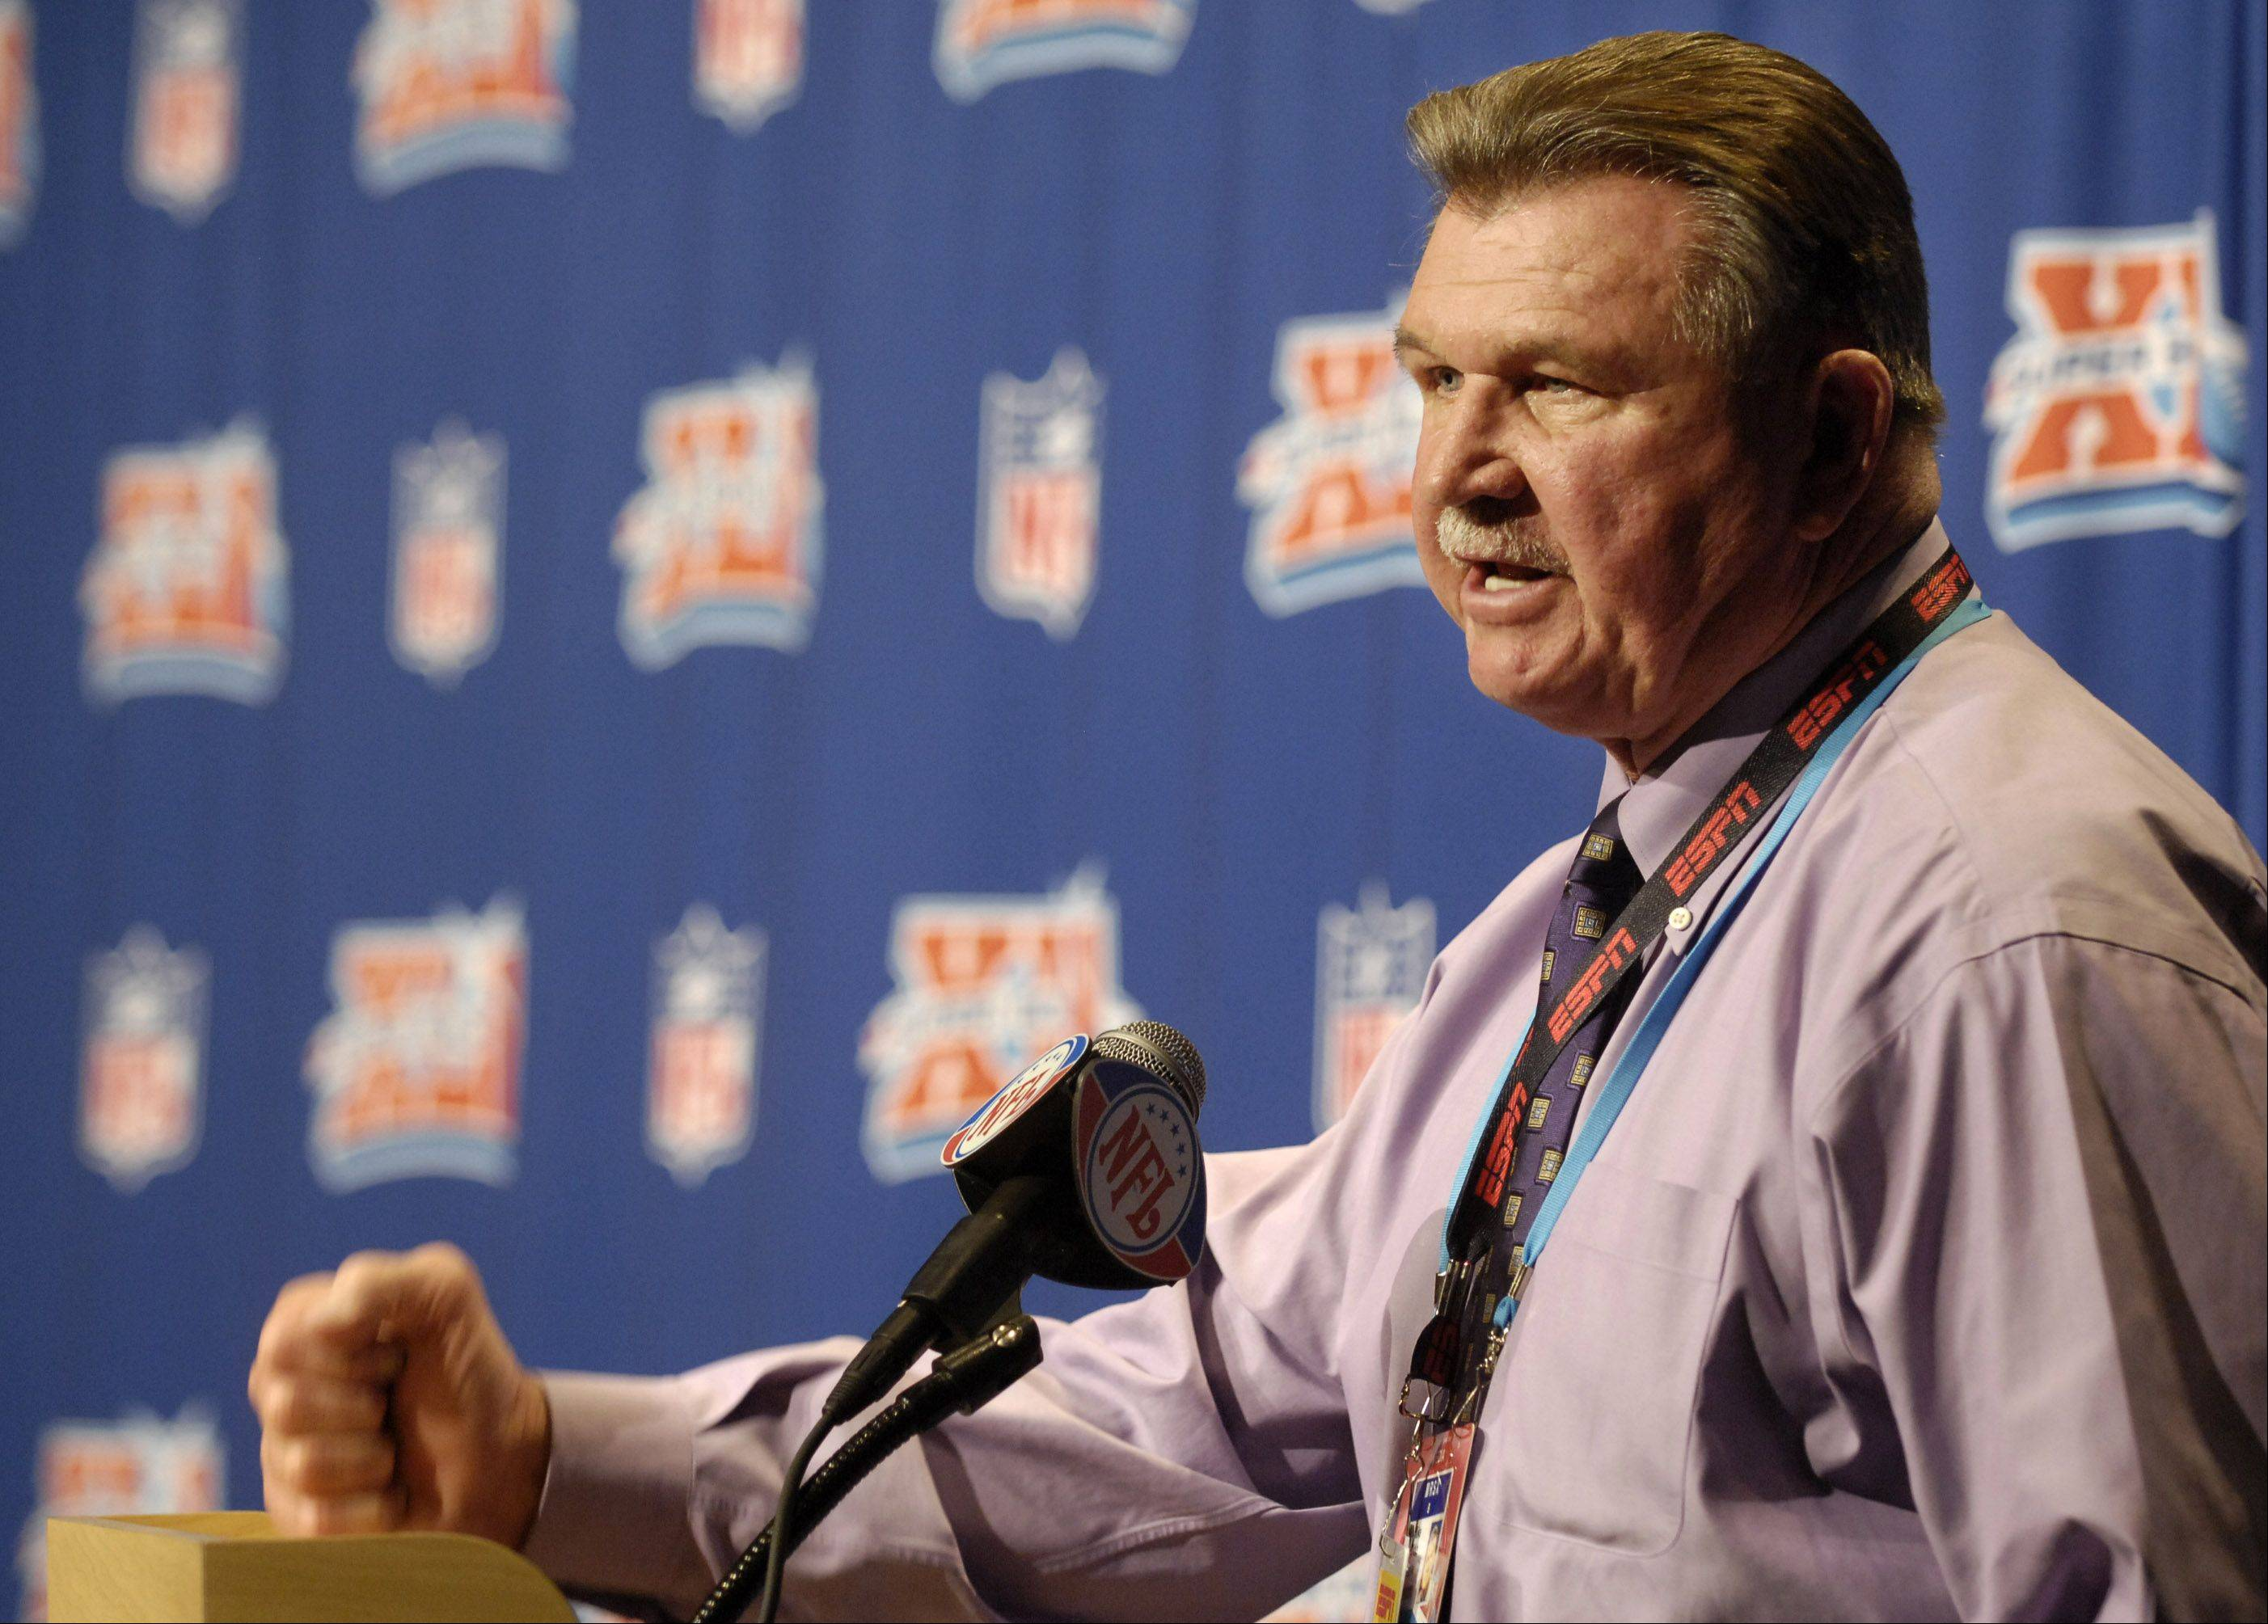 The Chicago Bears will retire Mike Ditka's jersey number 89.